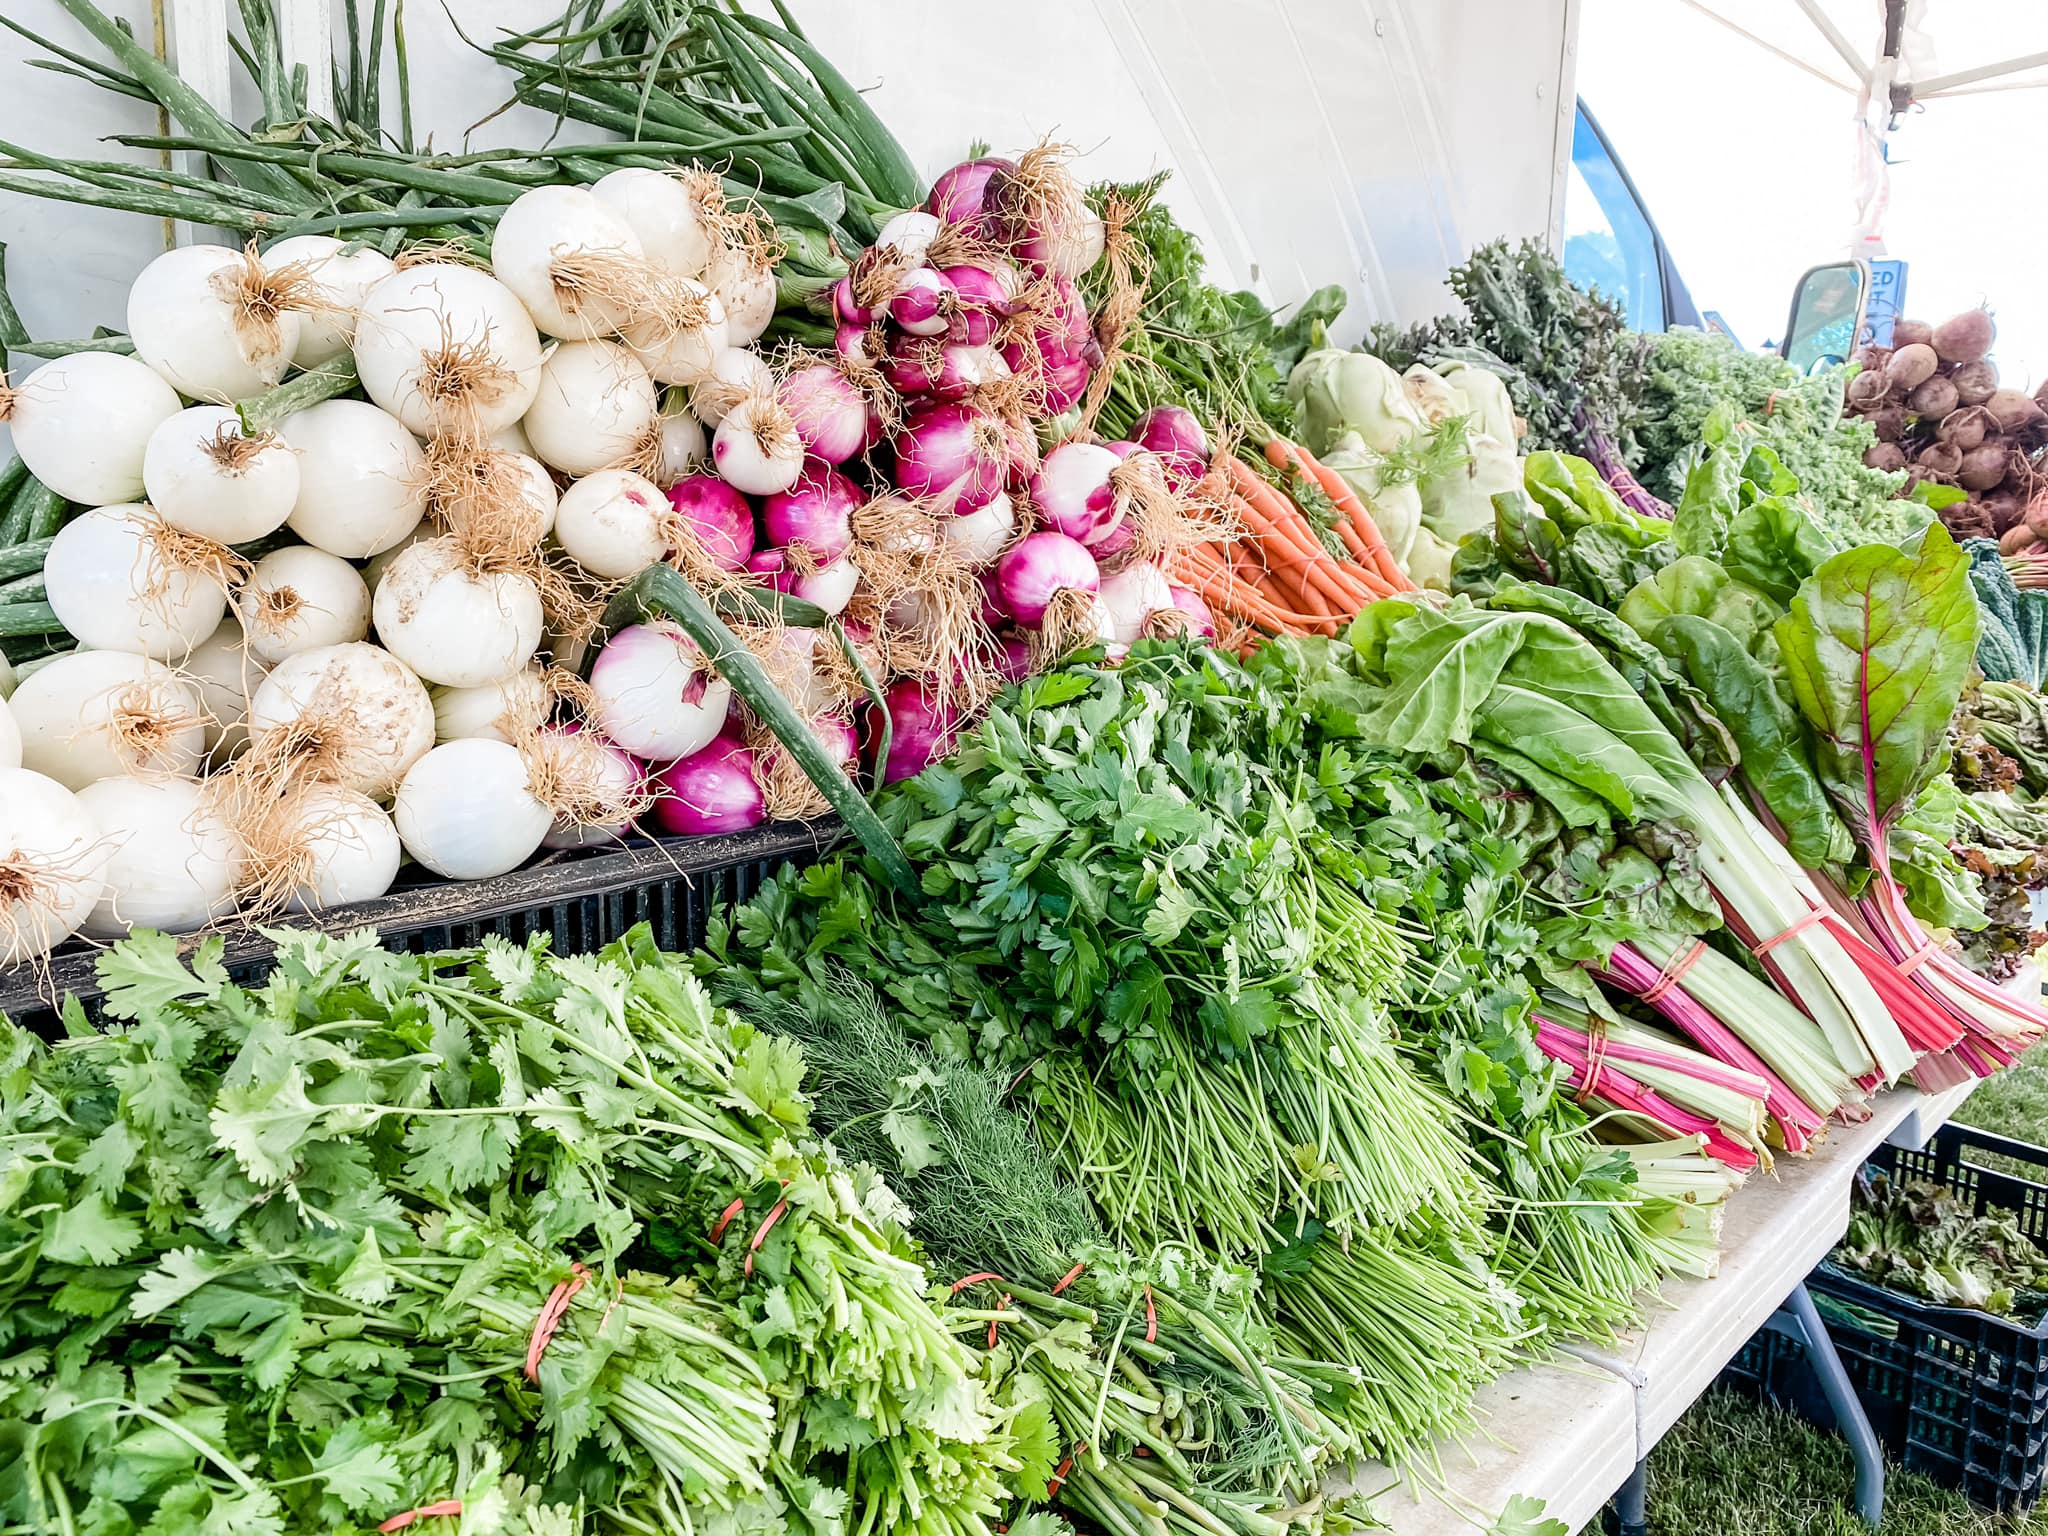 Radishes, onion, carrots and other produce from the farmers market